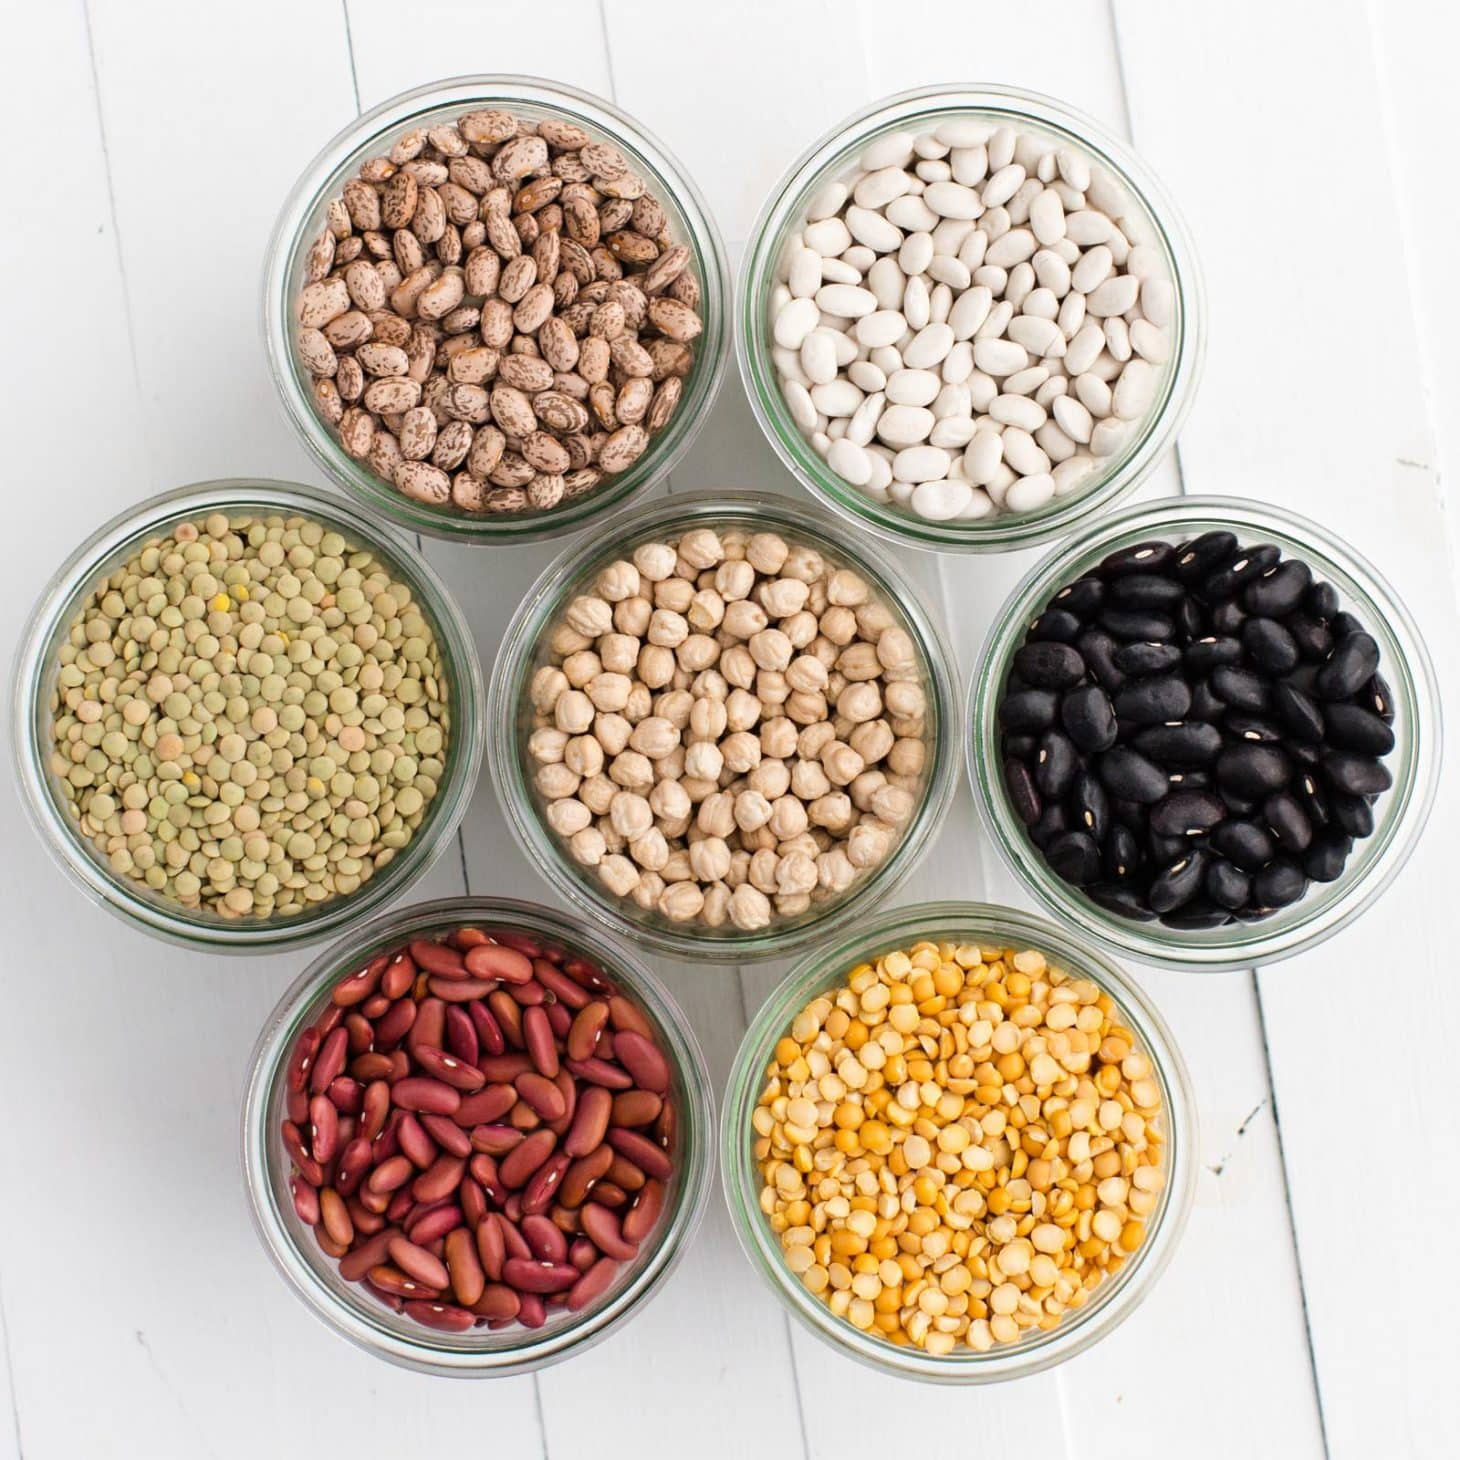 Legumes-Stocking a Pantry